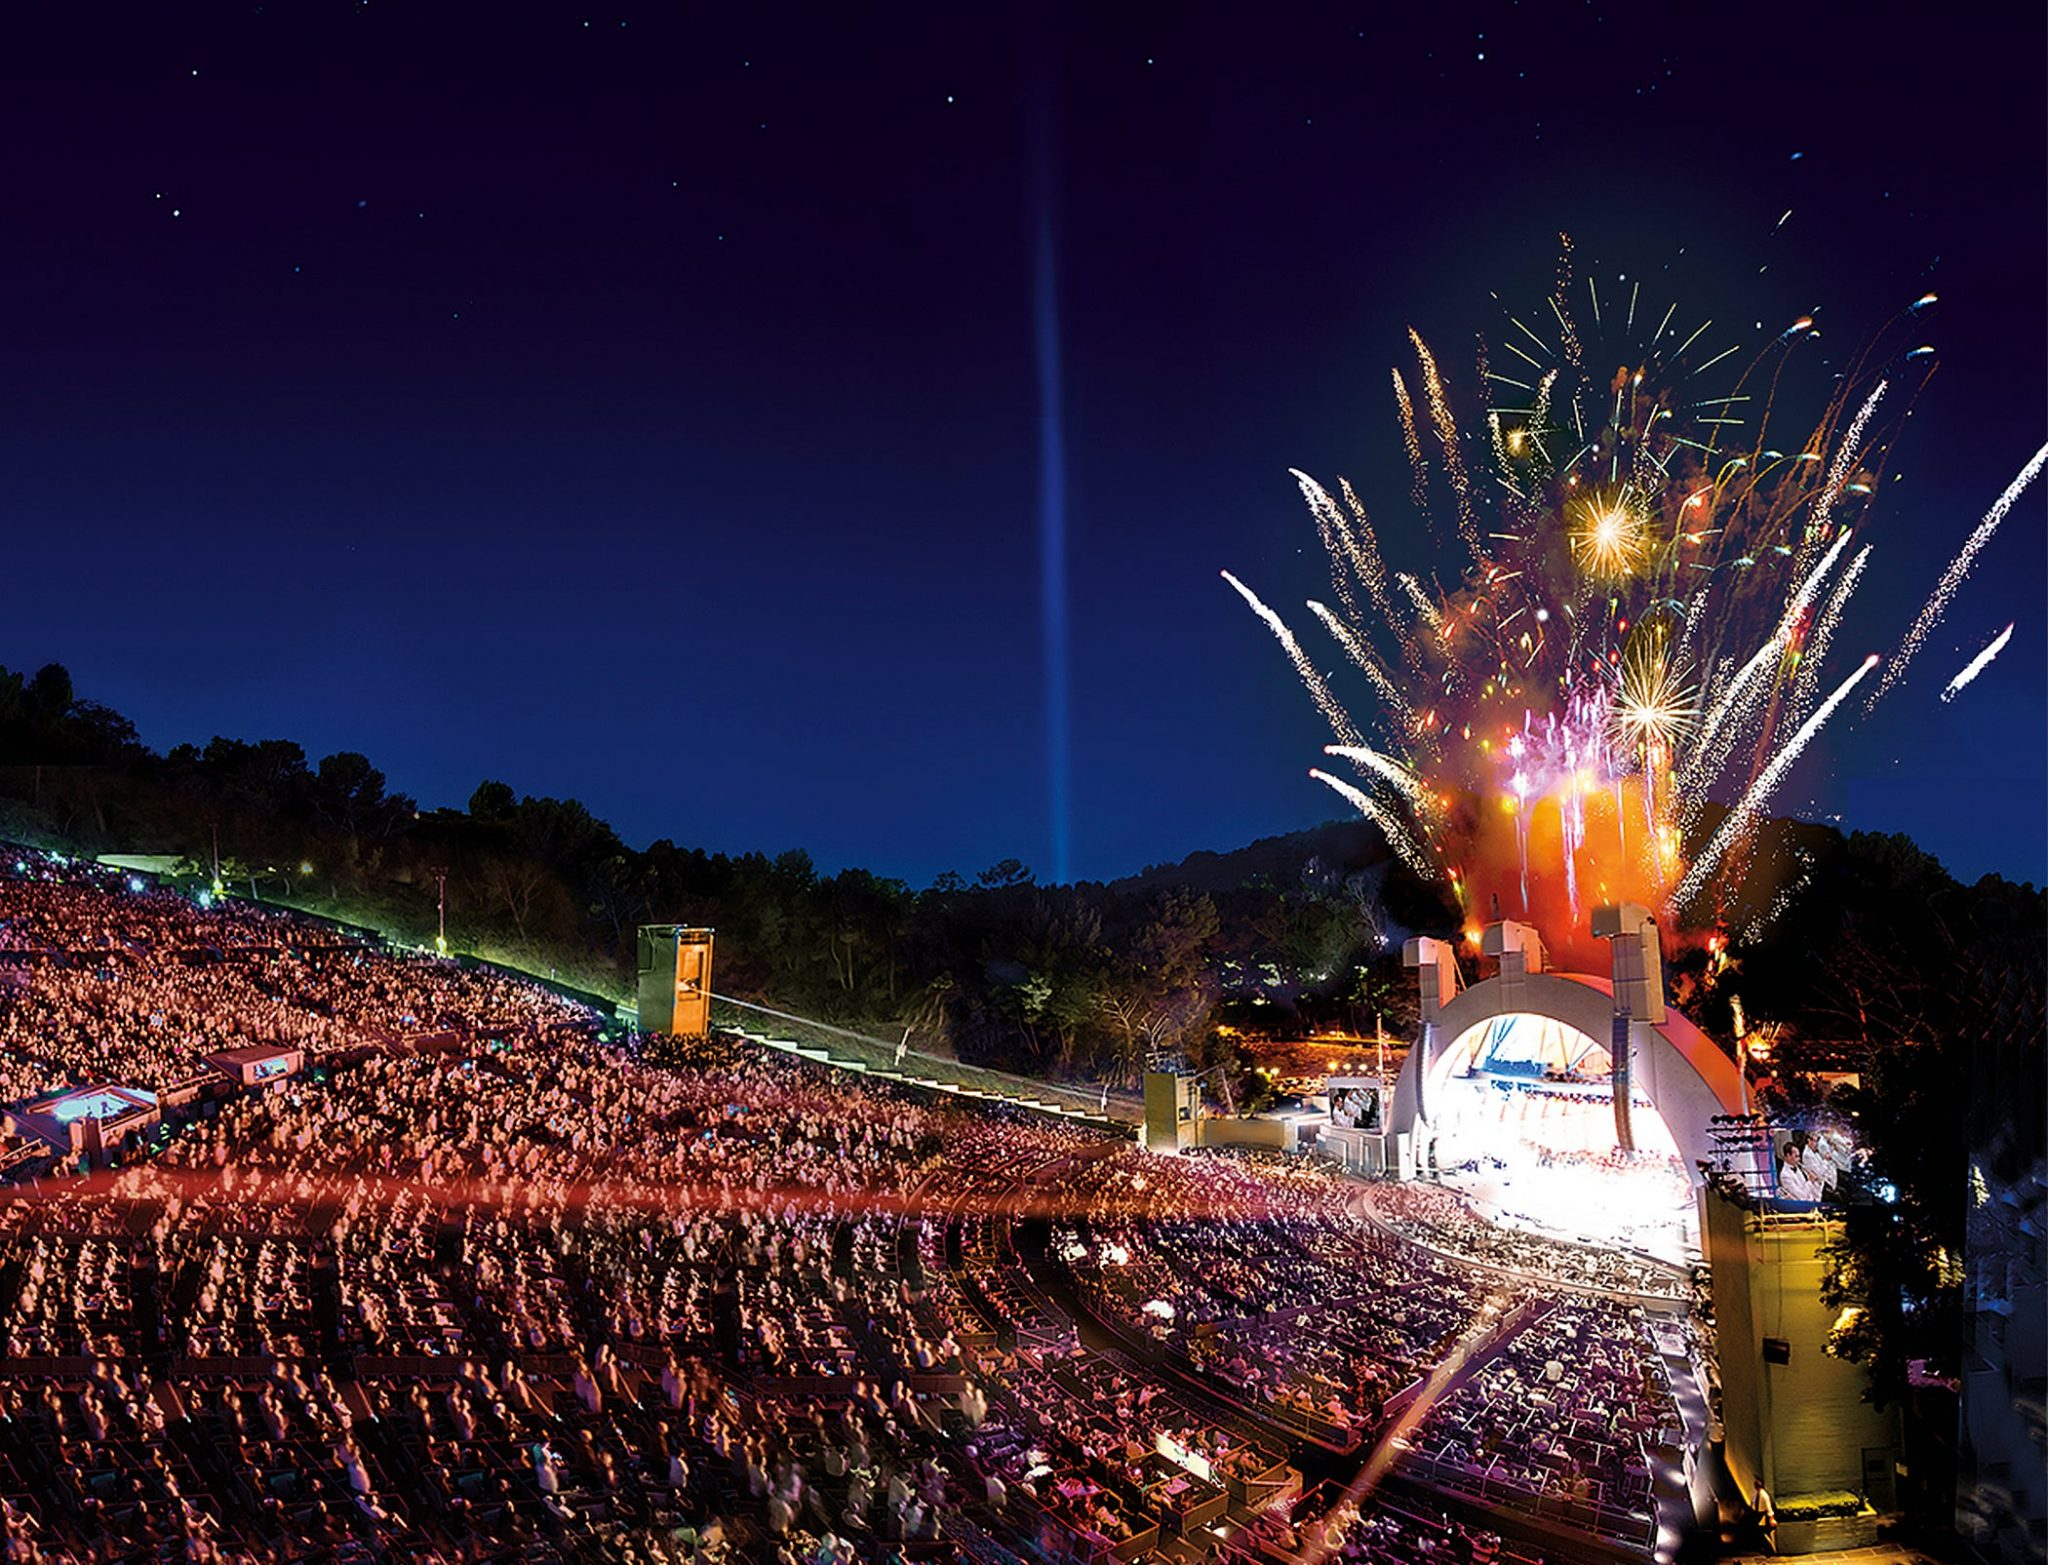 Hollywood Bowl Will Separate Non-Vaccinated from Vaccinated Attendees